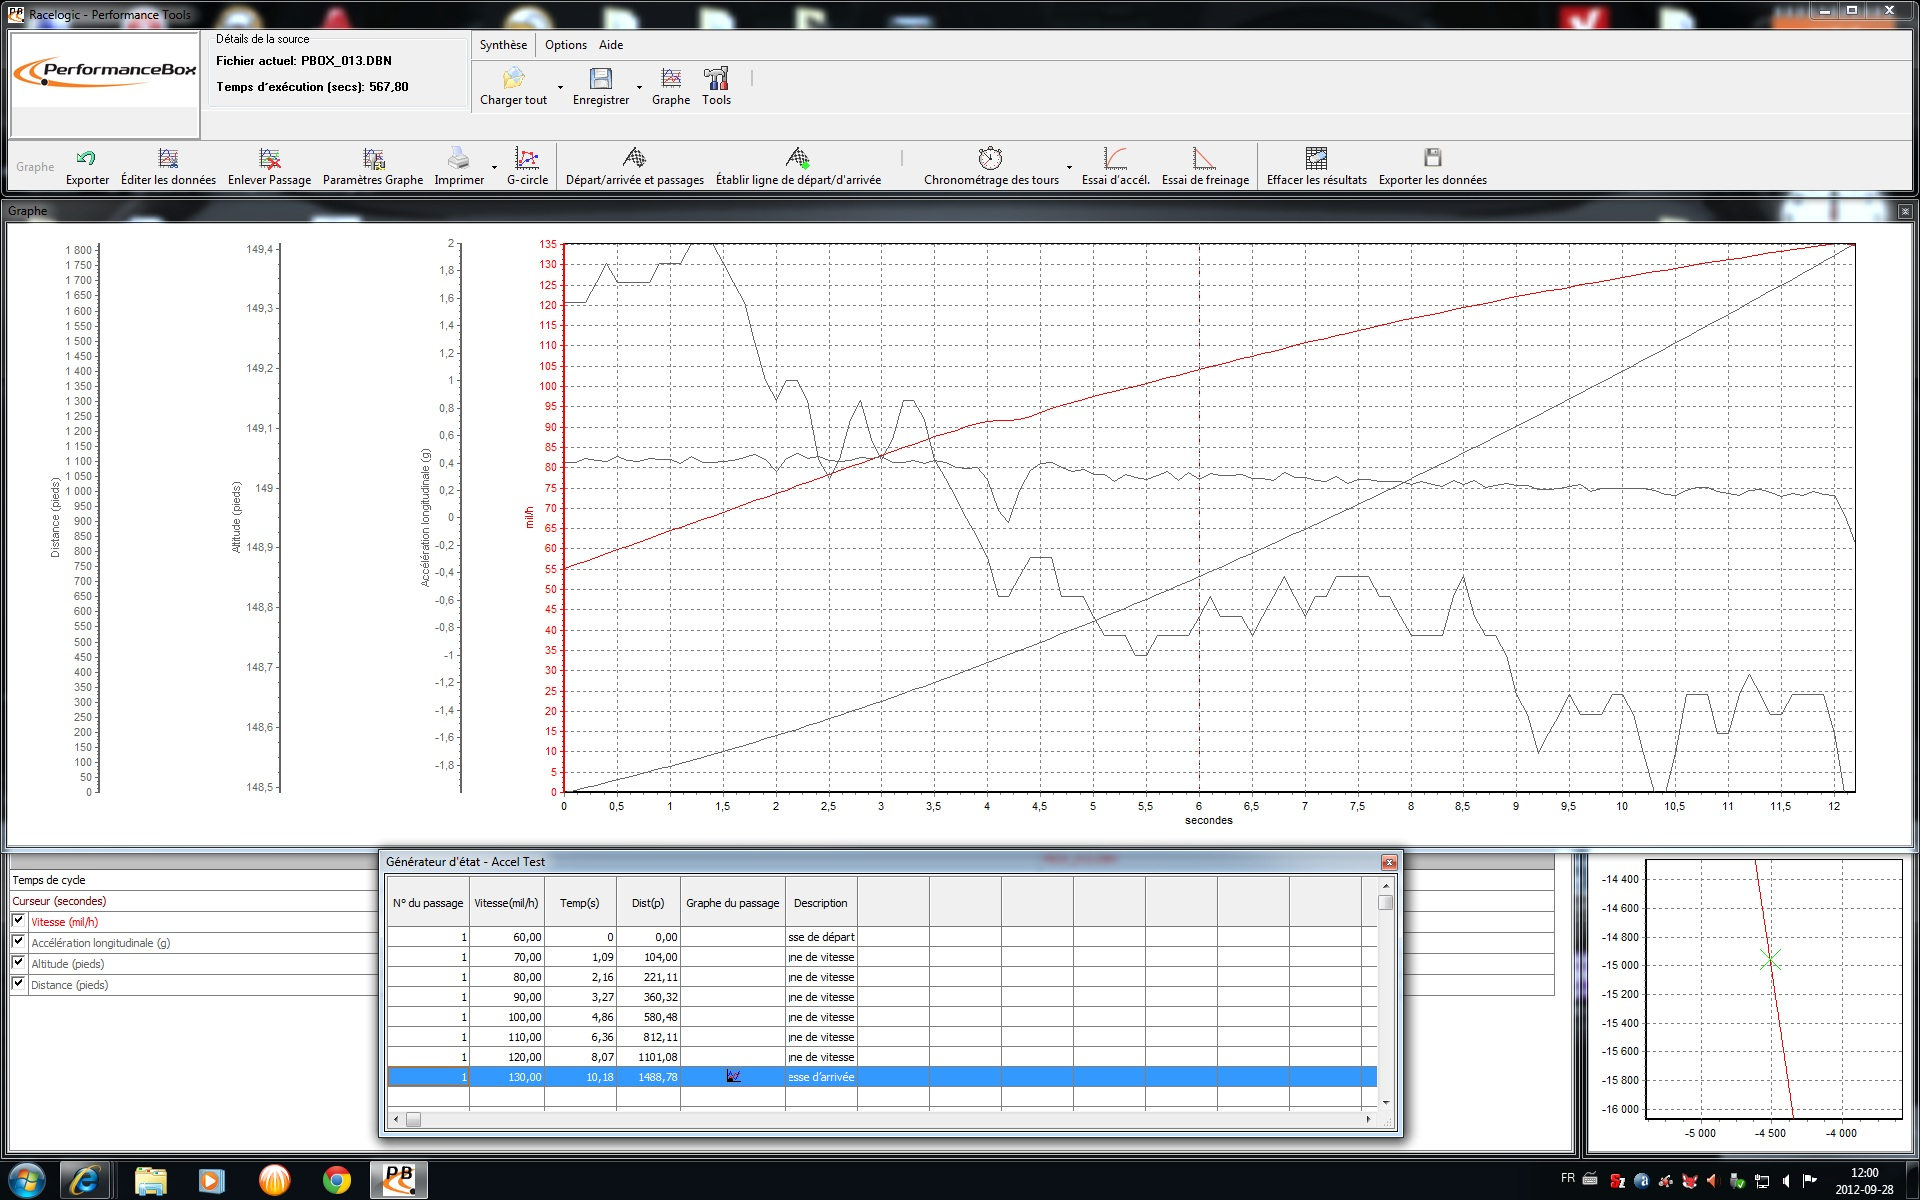 BMW 335xi VBOX Graph